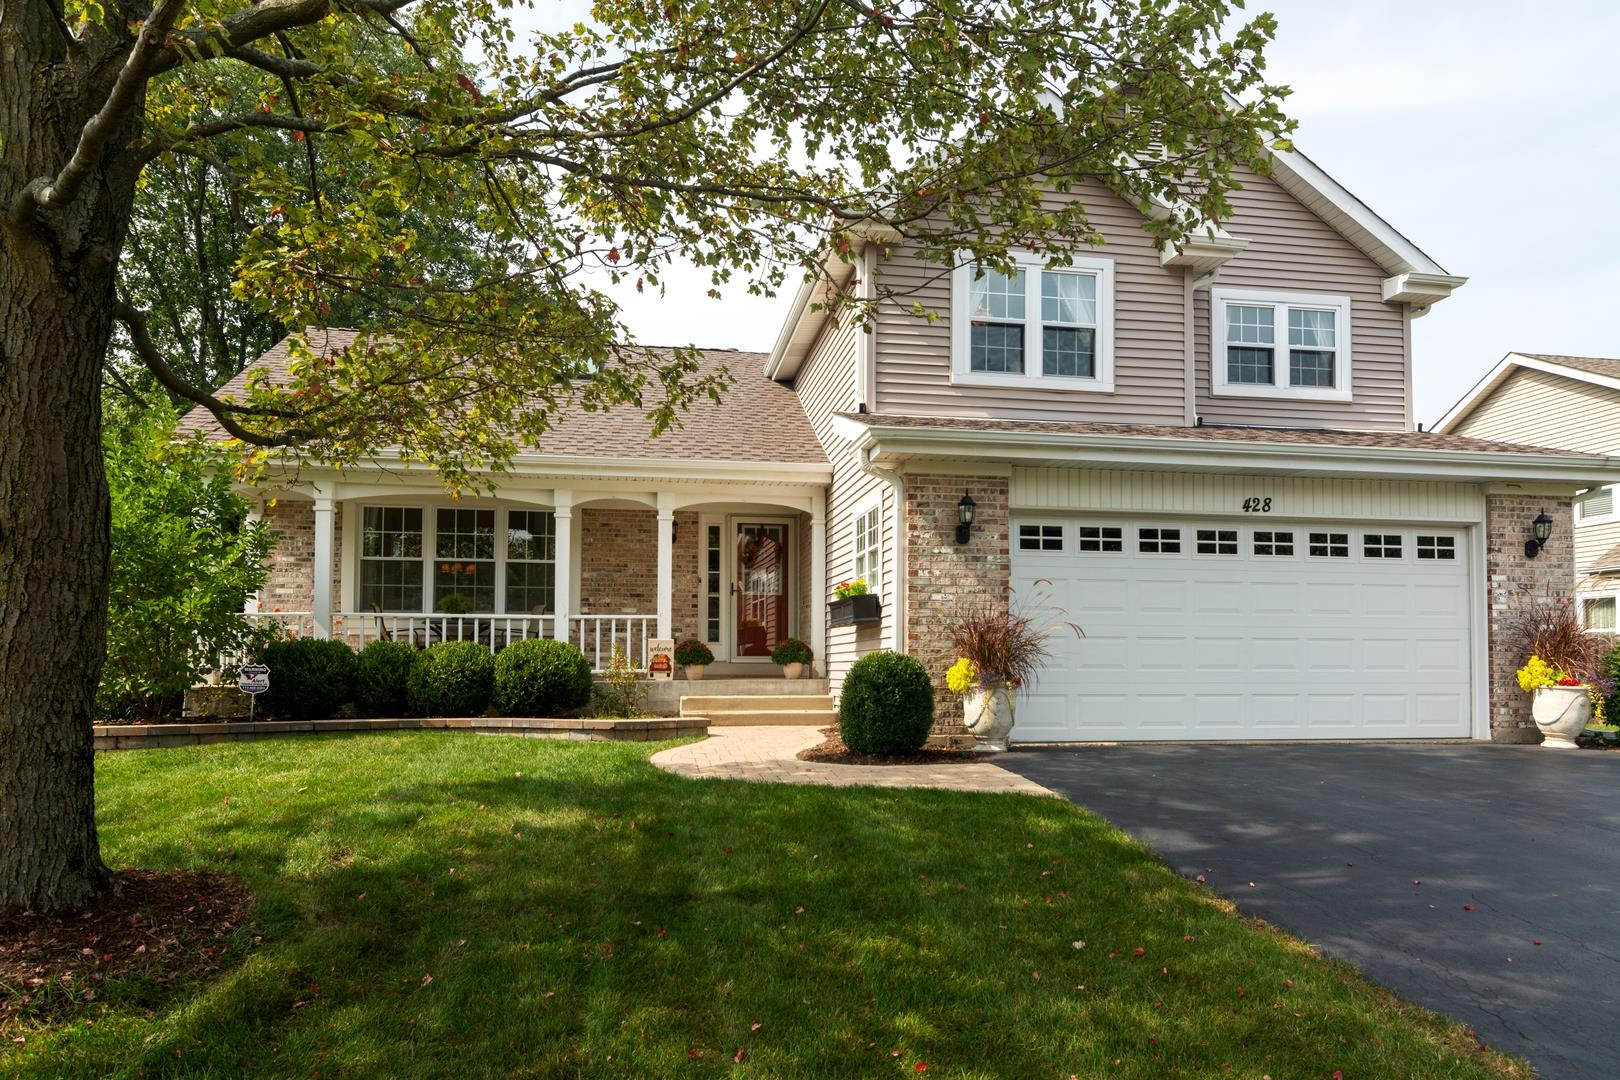 428 Tall Grass Circle, Lake Zurich, IL 60047 - #: 10887862